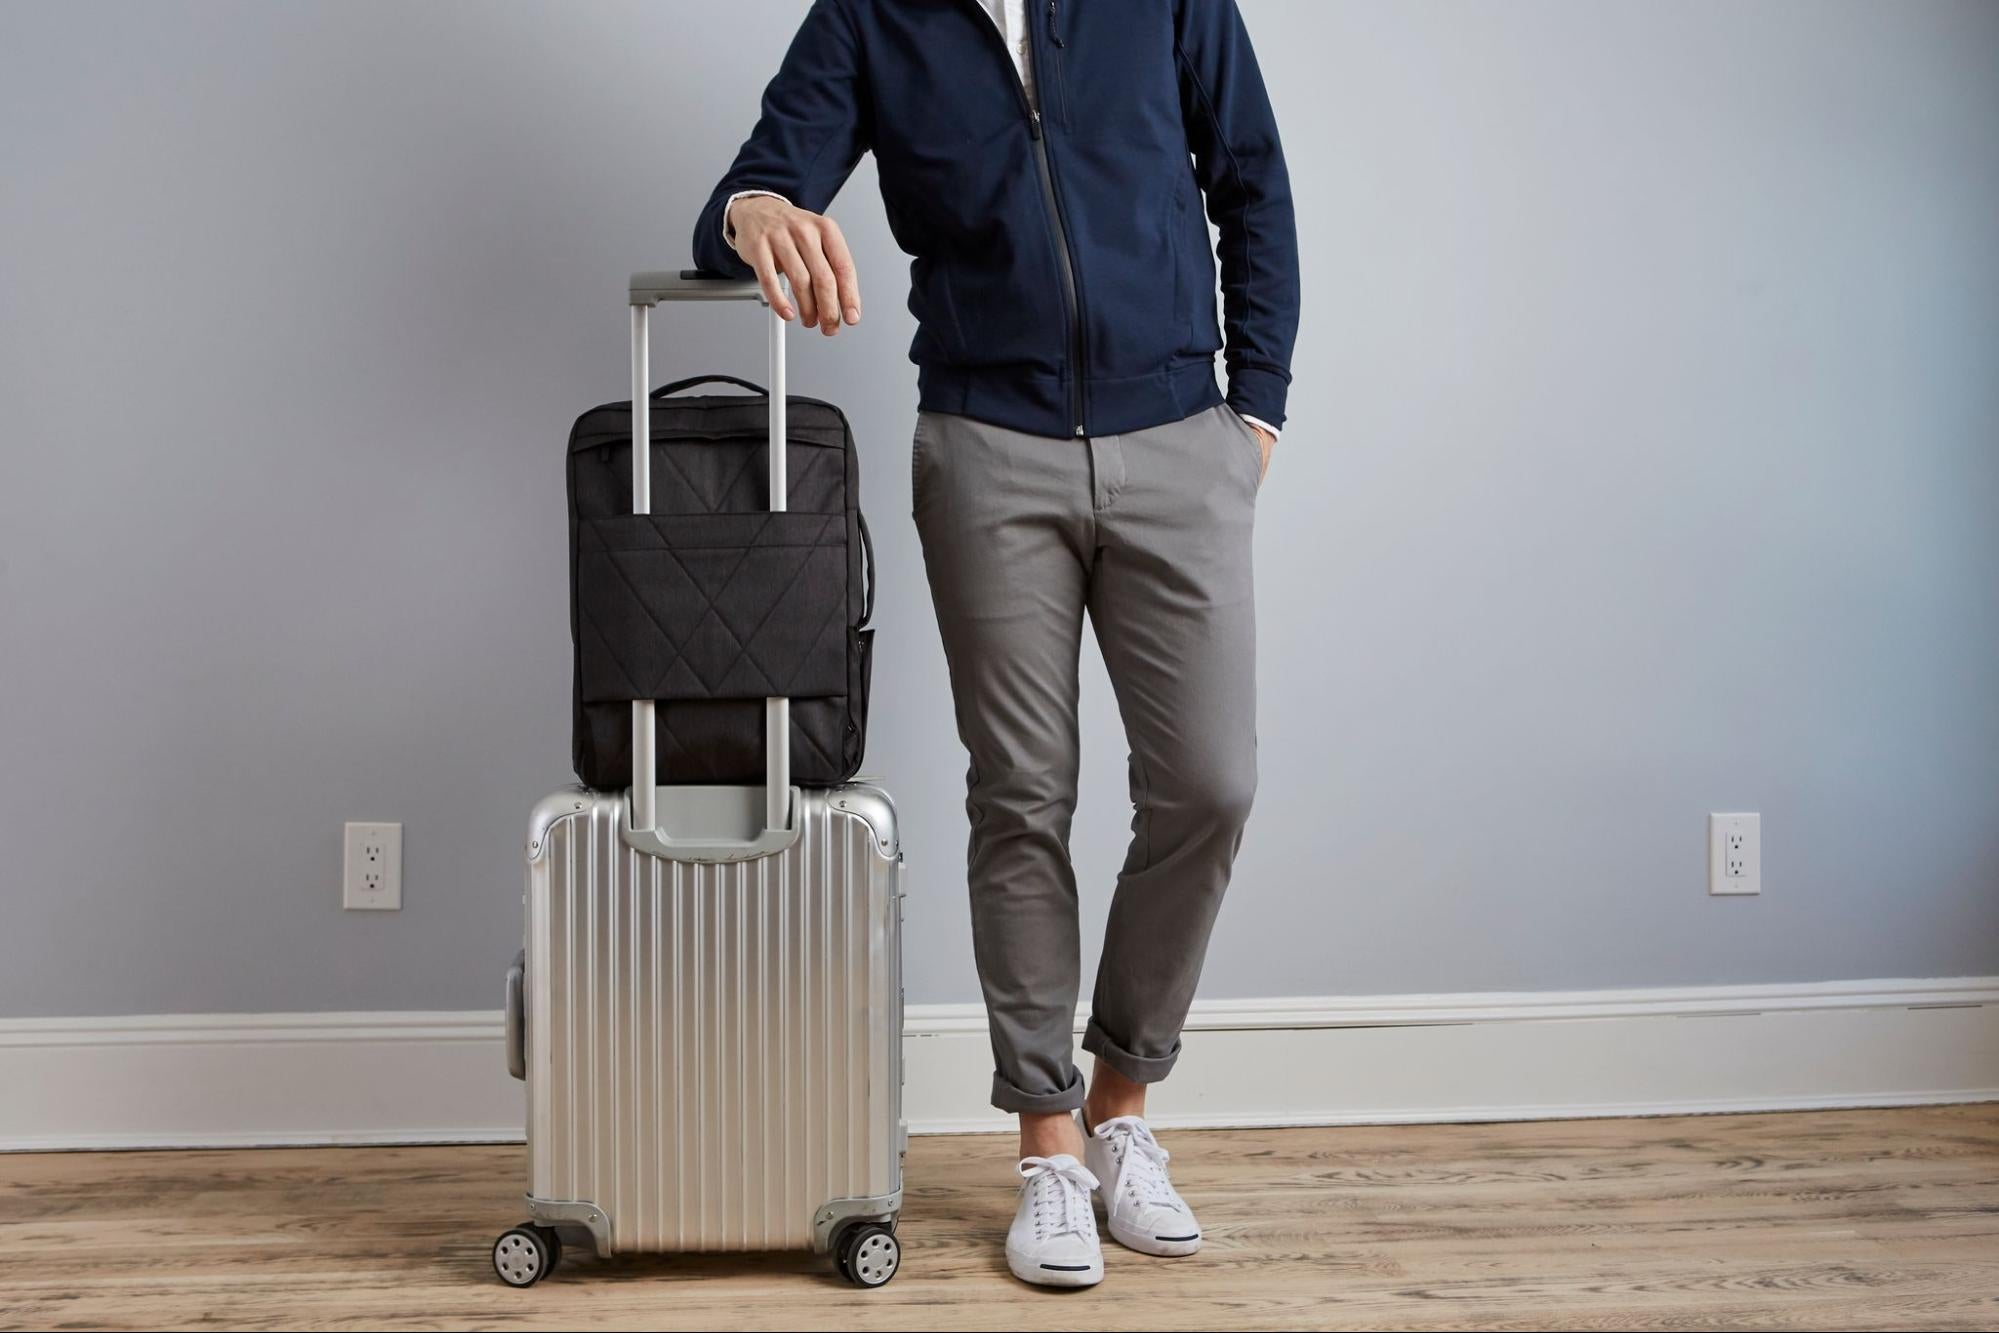 A model standing next to luggage and a travel pack from Mack Weldon.